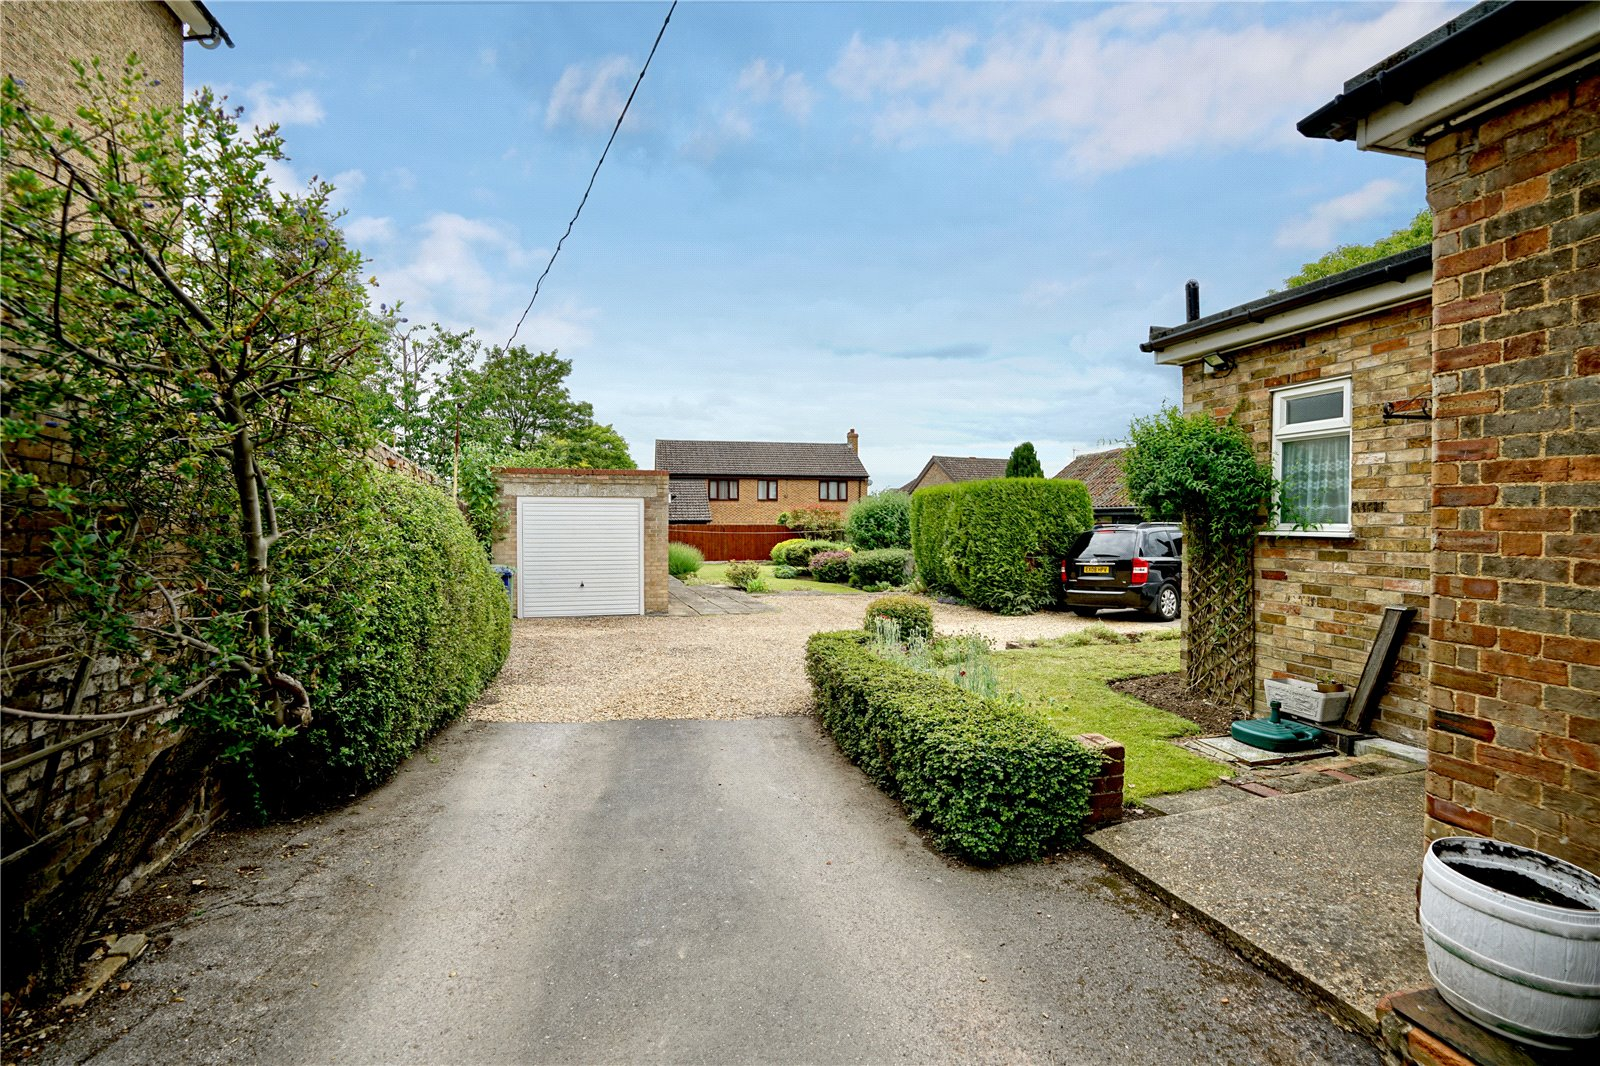 3 bed house for sale in Great North Road, Eaton Socon  - Property Image 4